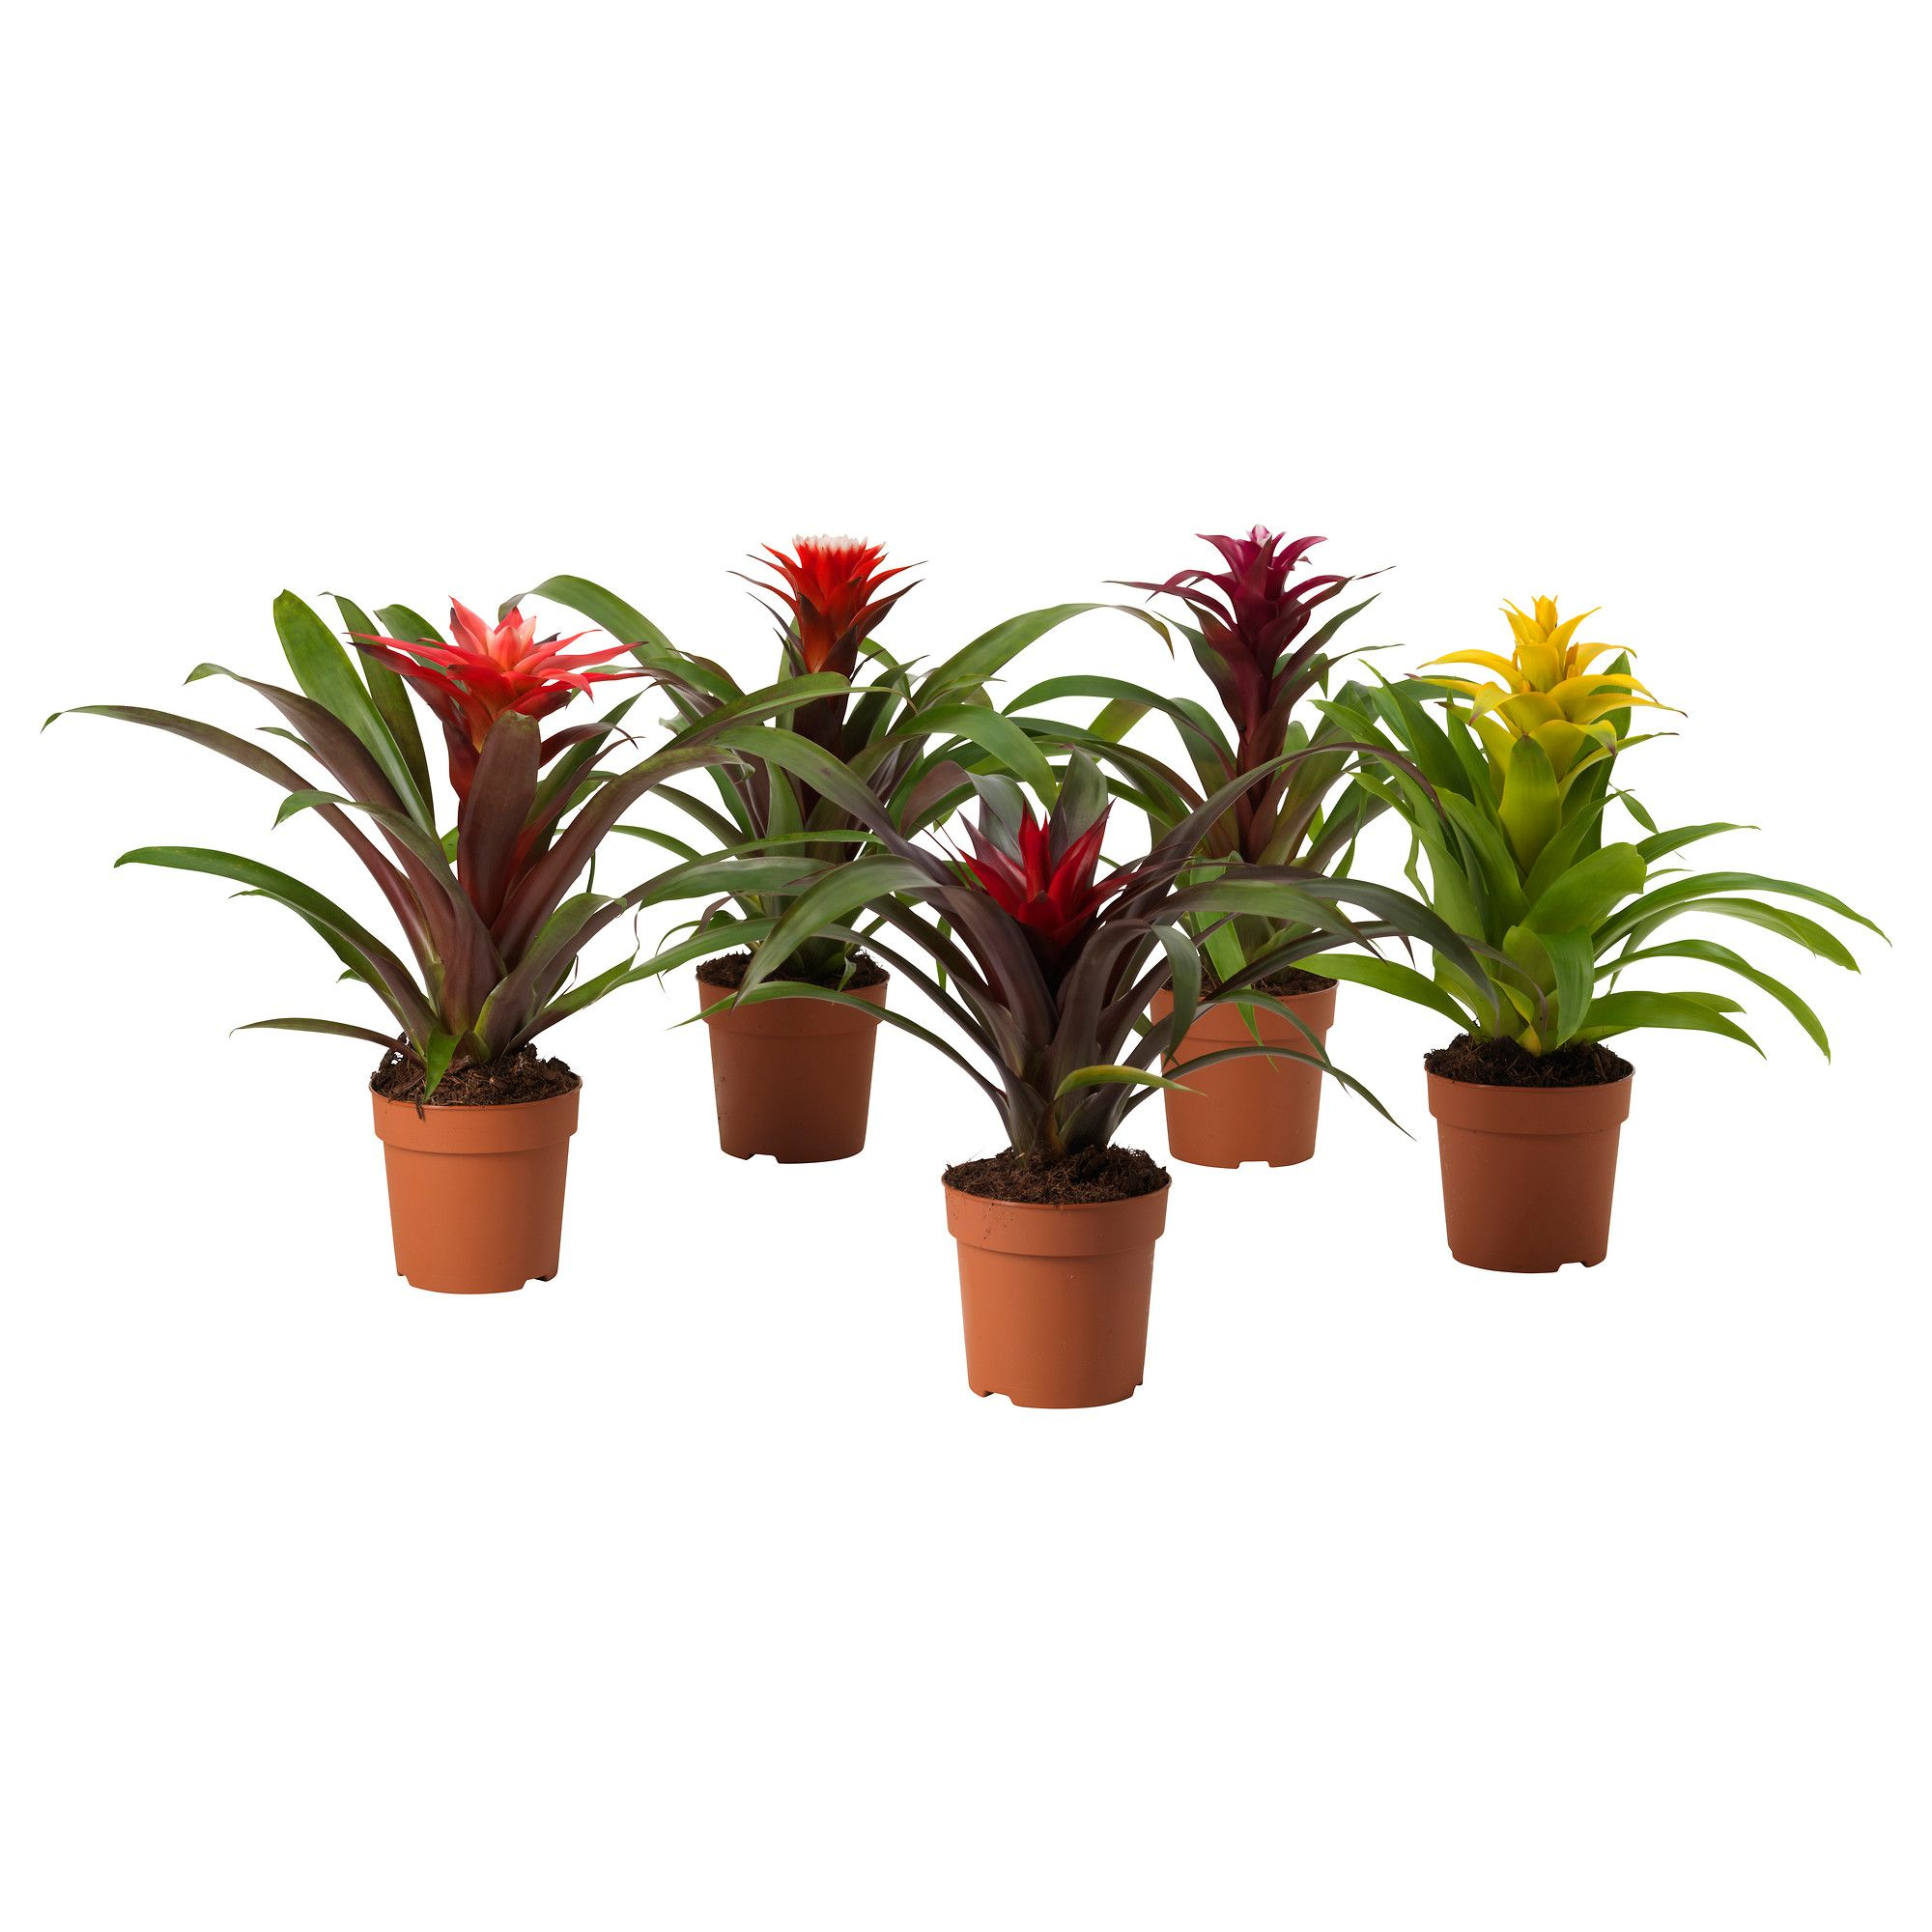 13 guzmania potted plant ikea 6 d office cubicle decor pinterest plants and office. Black Bedroom Furniture Sets. Home Design Ideas